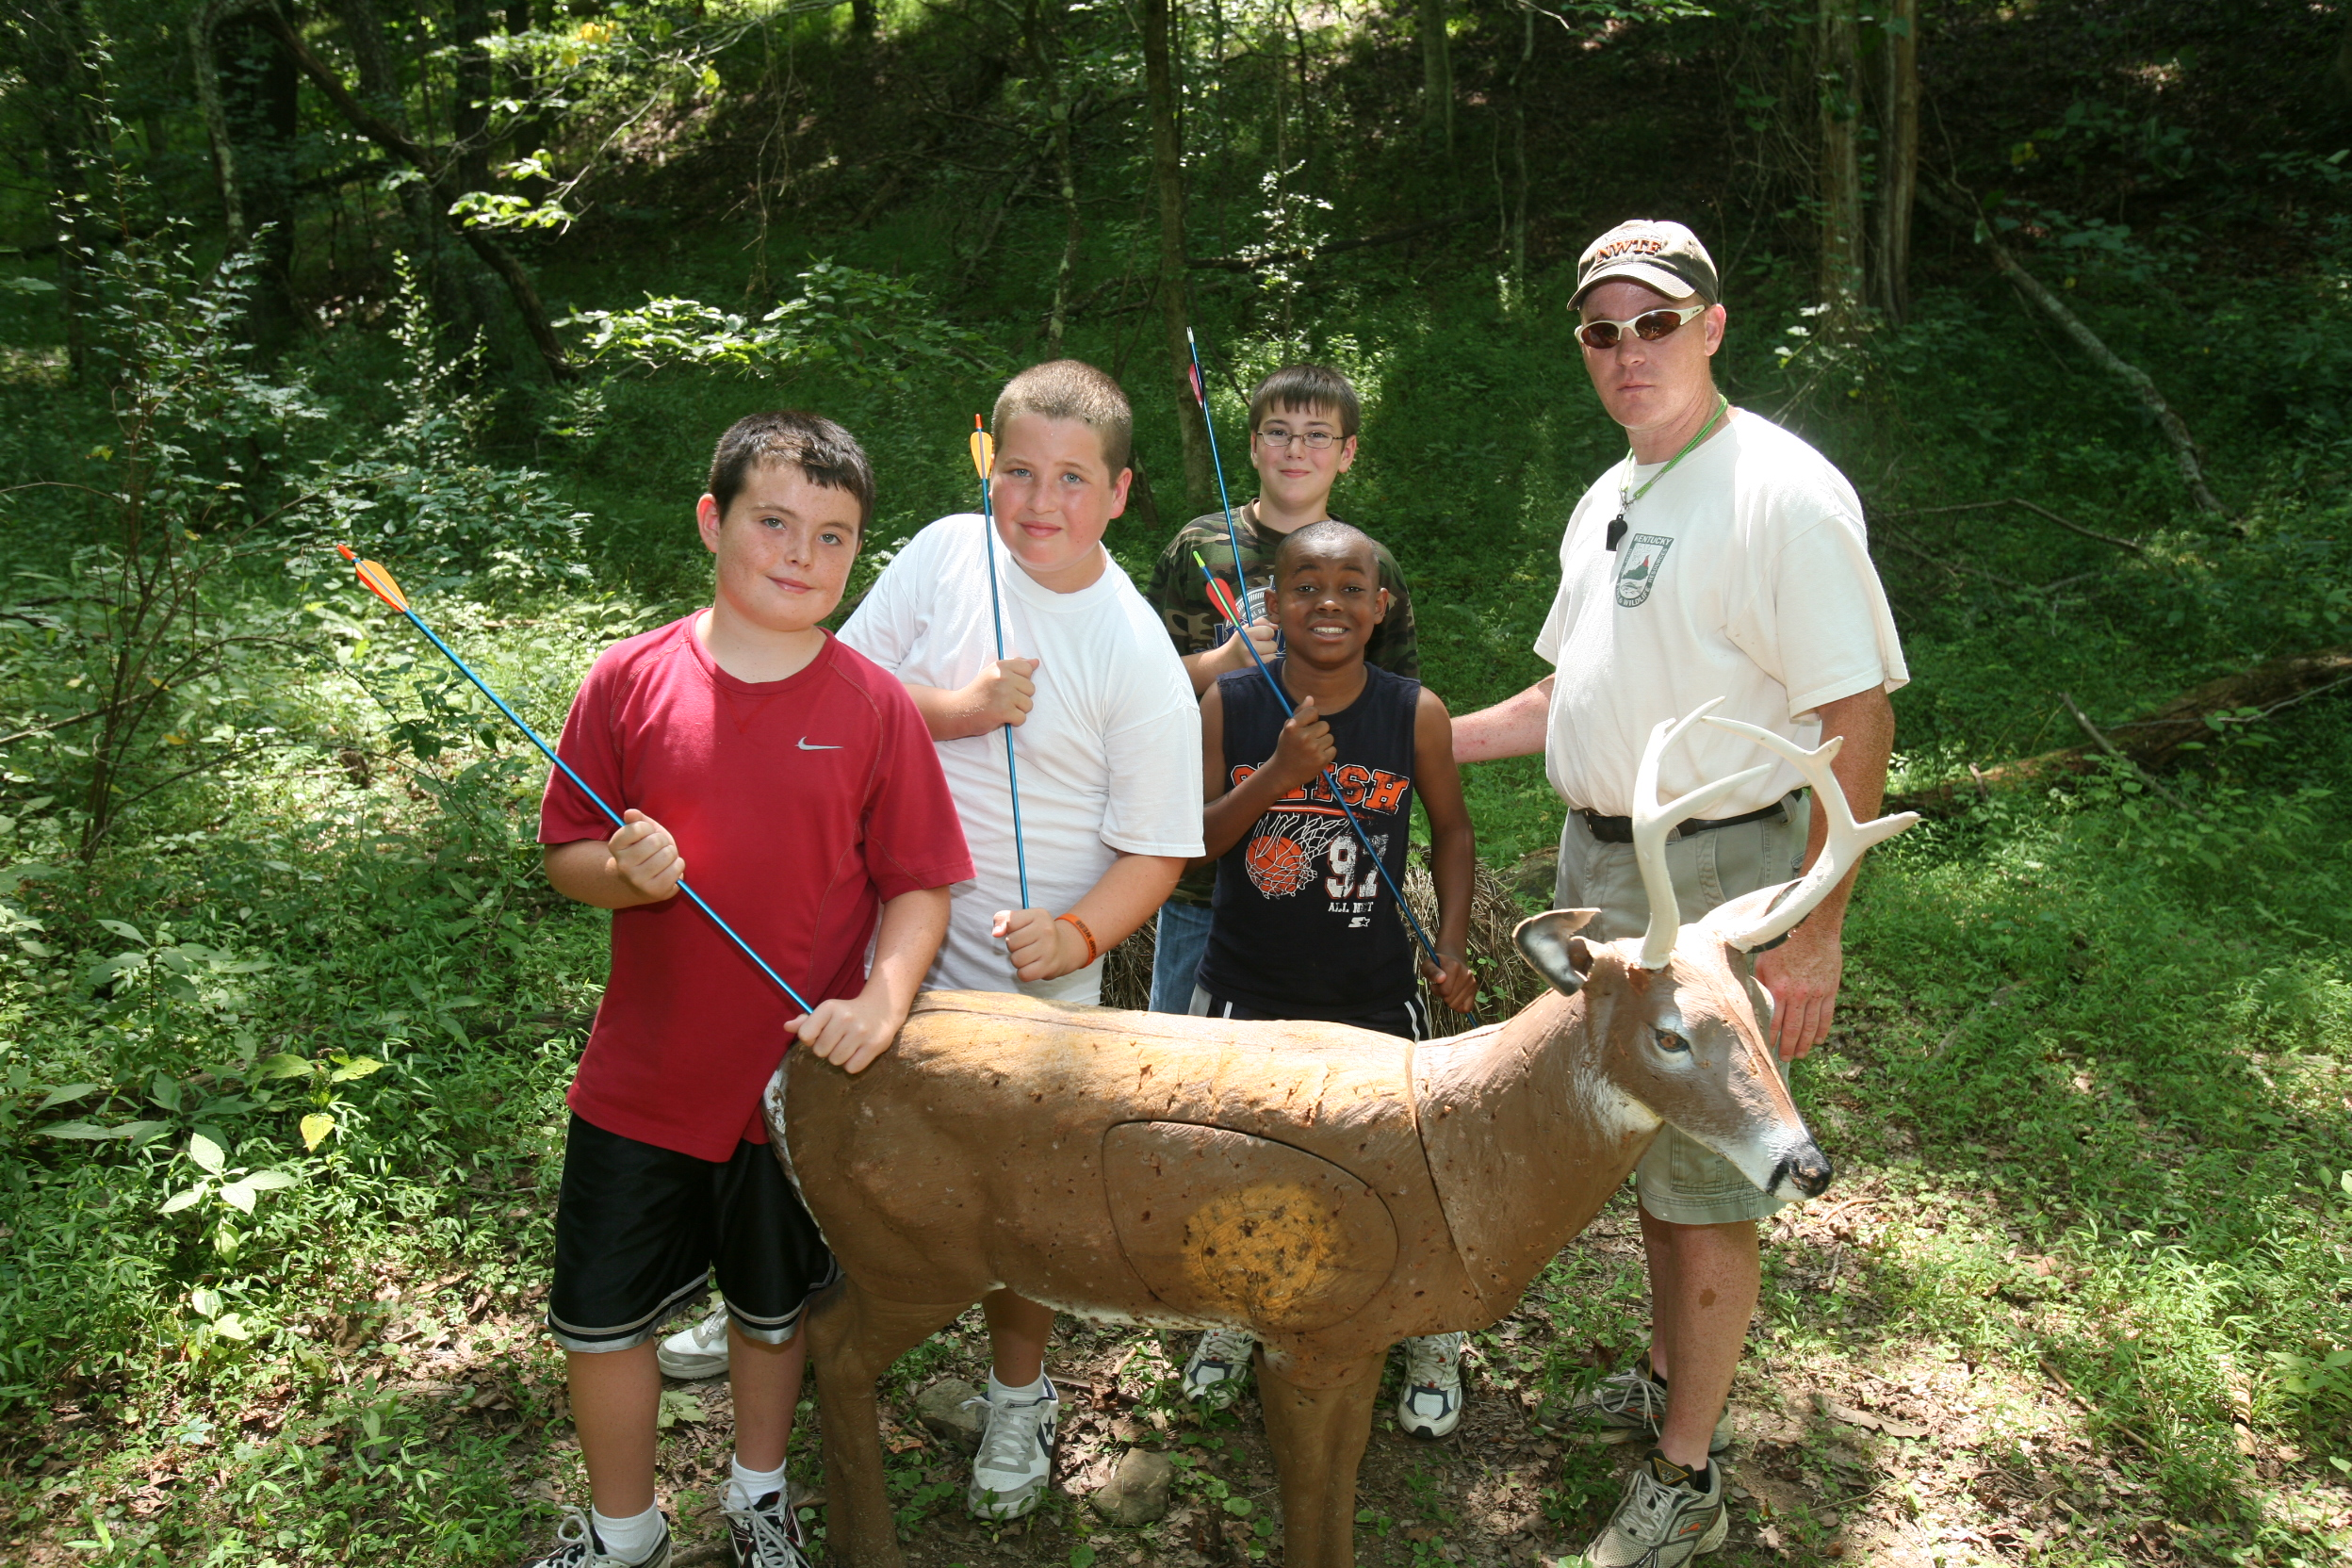 Kentucky department of fish wildlife camp robert webb for Ky fishing license cost